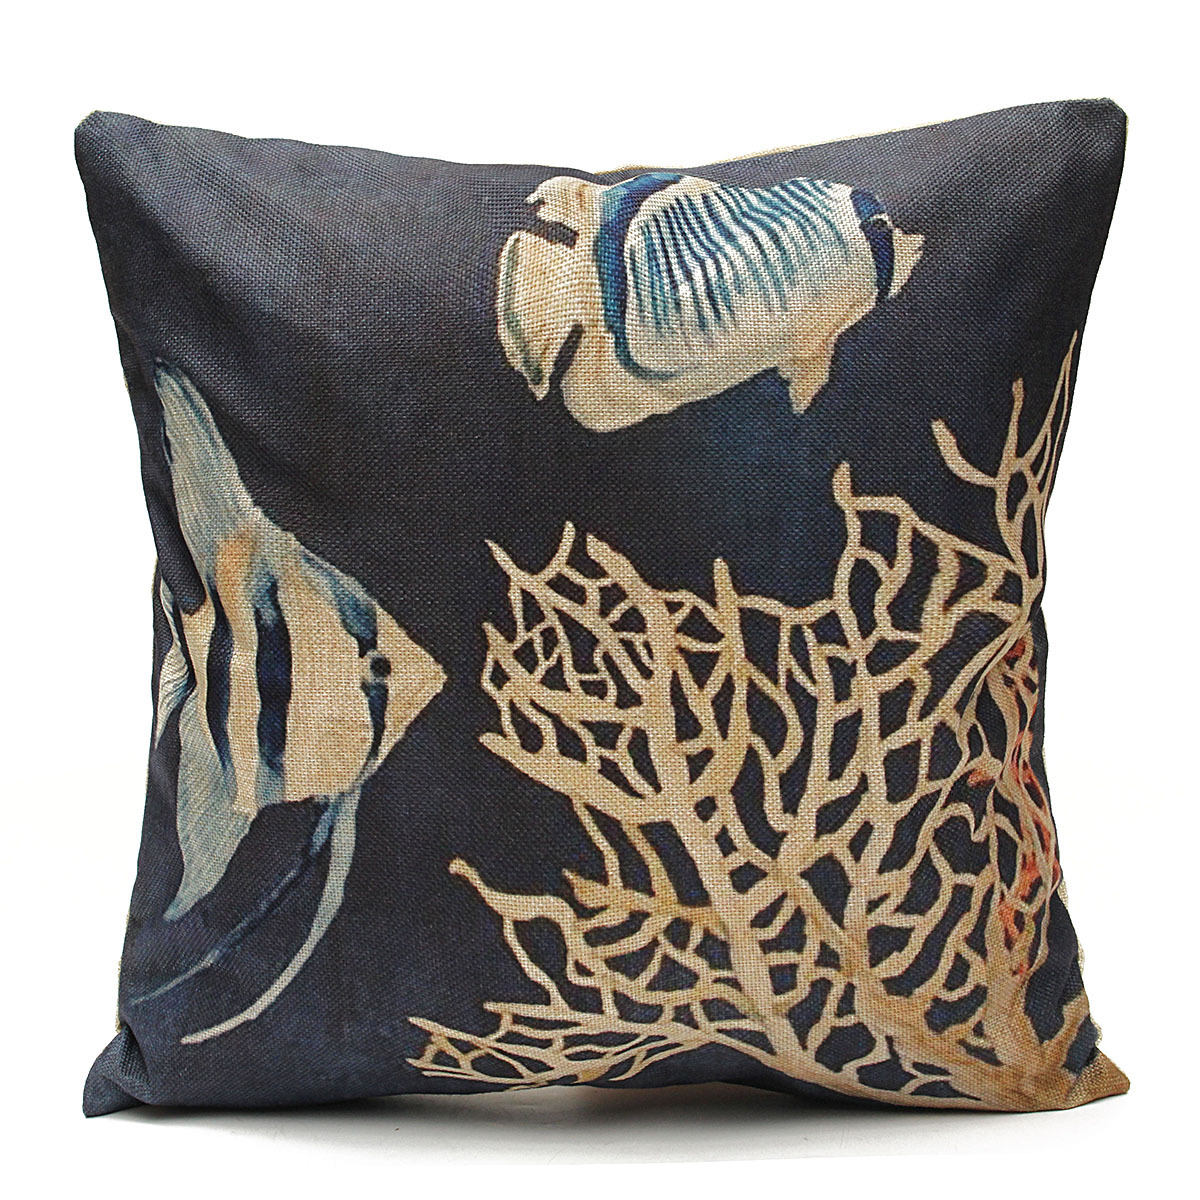 Throw Pillows Nordstrom : Ocean Coastal Beach Nautical Throw Pillow Case Cushion Cover Sofa Home Decor eBay